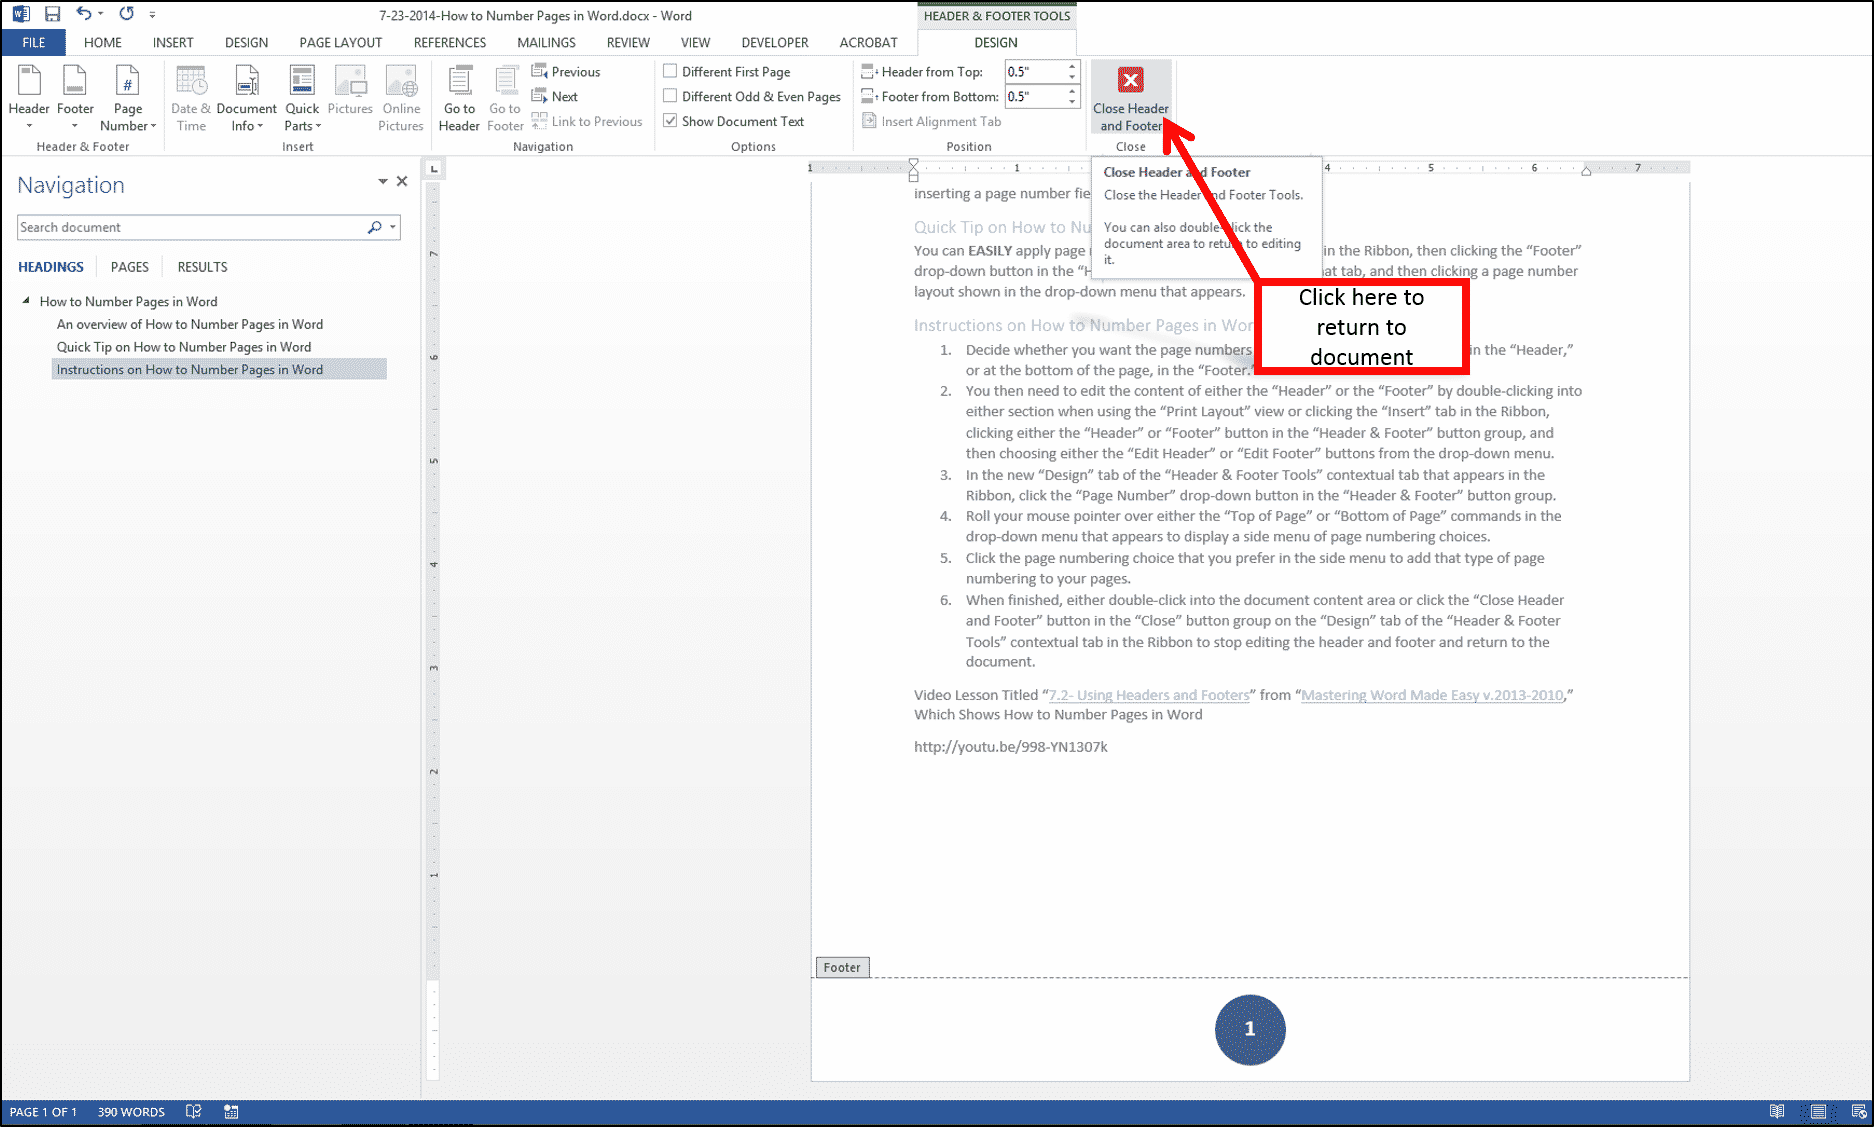 "How to Number Pages in Word: Step #6- When finished, either double-click into the document content area or click the ""Close Header and Footer"" button in the ""Close"" button group on the ""Design"" tab of the ""Header & Footer Tools"" contextual tab in the Ribbon to stop editing the header and footer and return to the document."